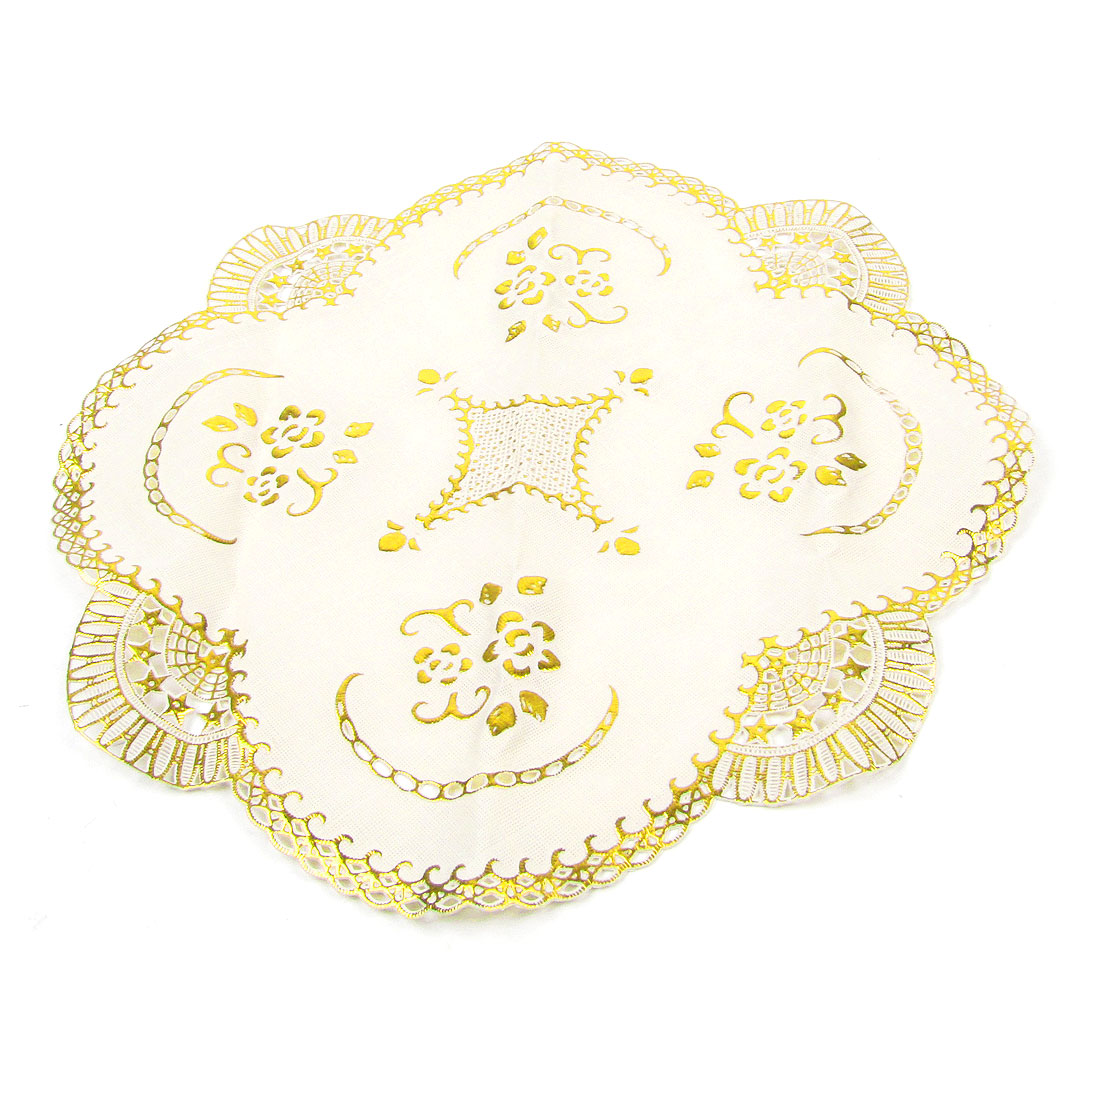 Round Flower Pattern Gold Tone Beige 29.5cm Dia Cup Pad Coasters